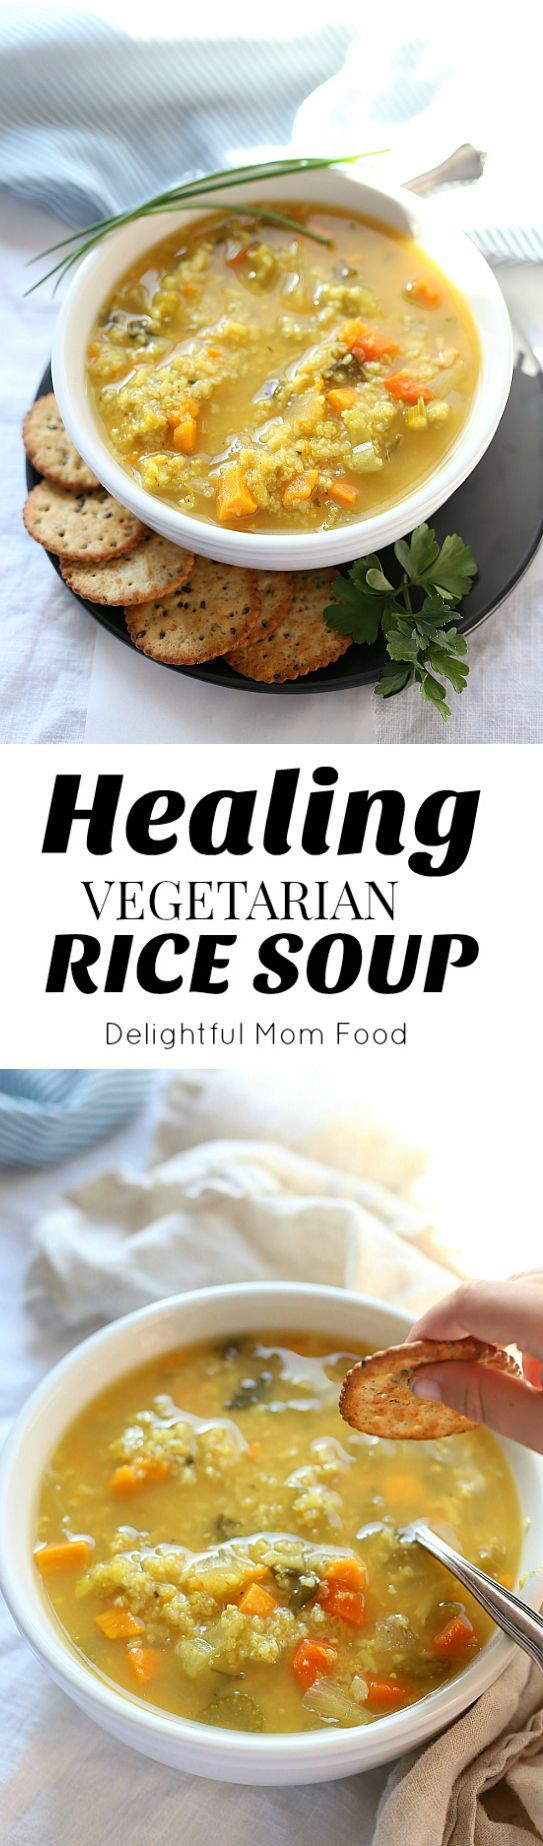 Hearty and Healing Rice Soup cooked In The Slow Cooker!